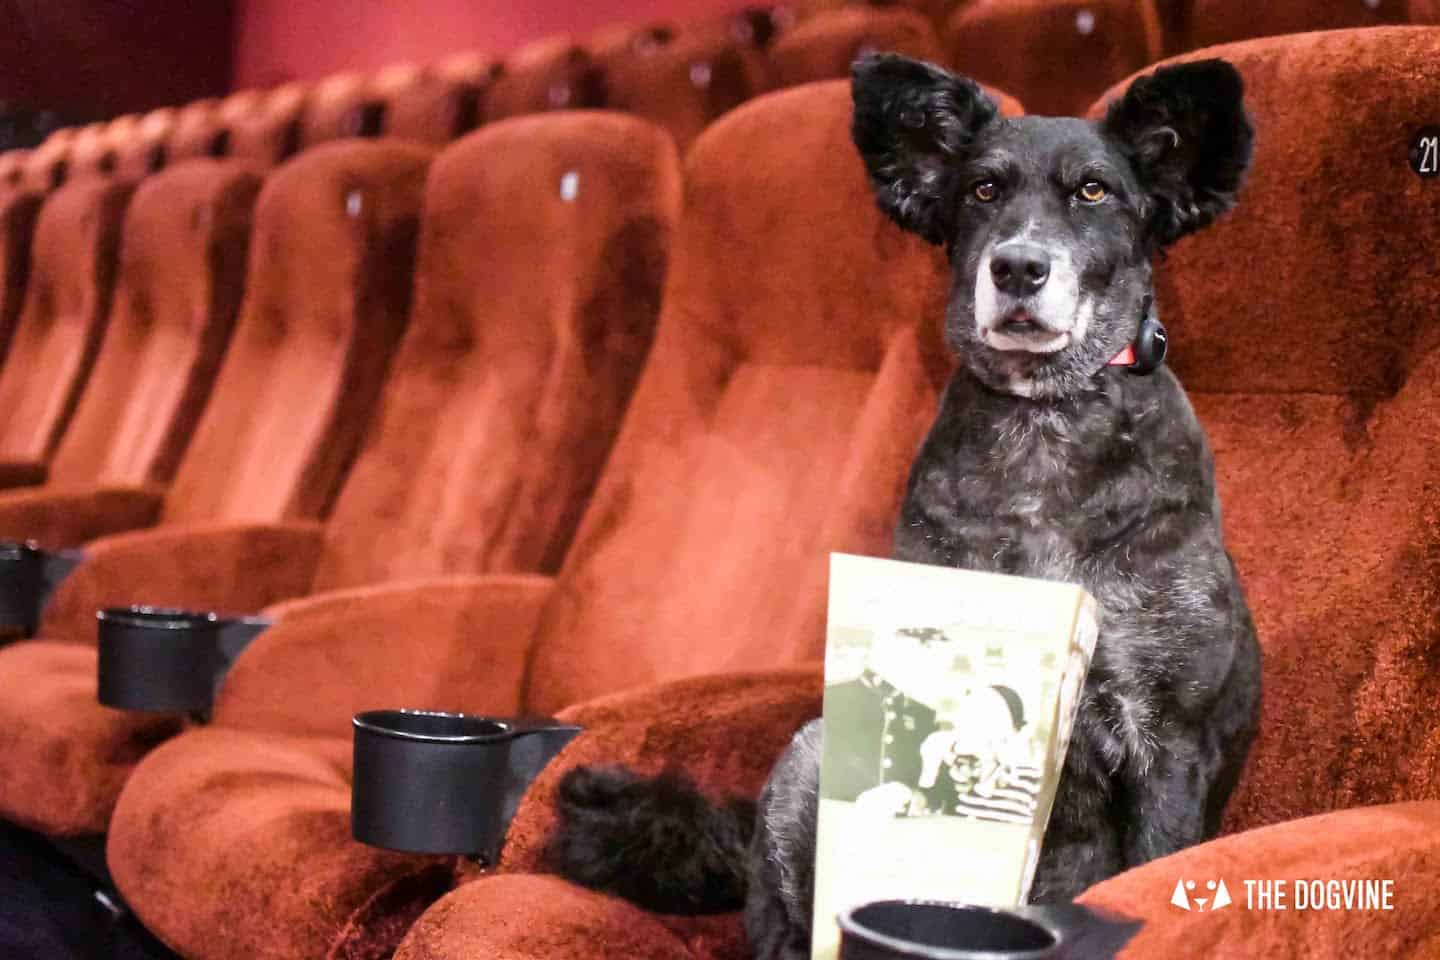 Dog-Friendly Cinema At Picturehouse Central September 2018